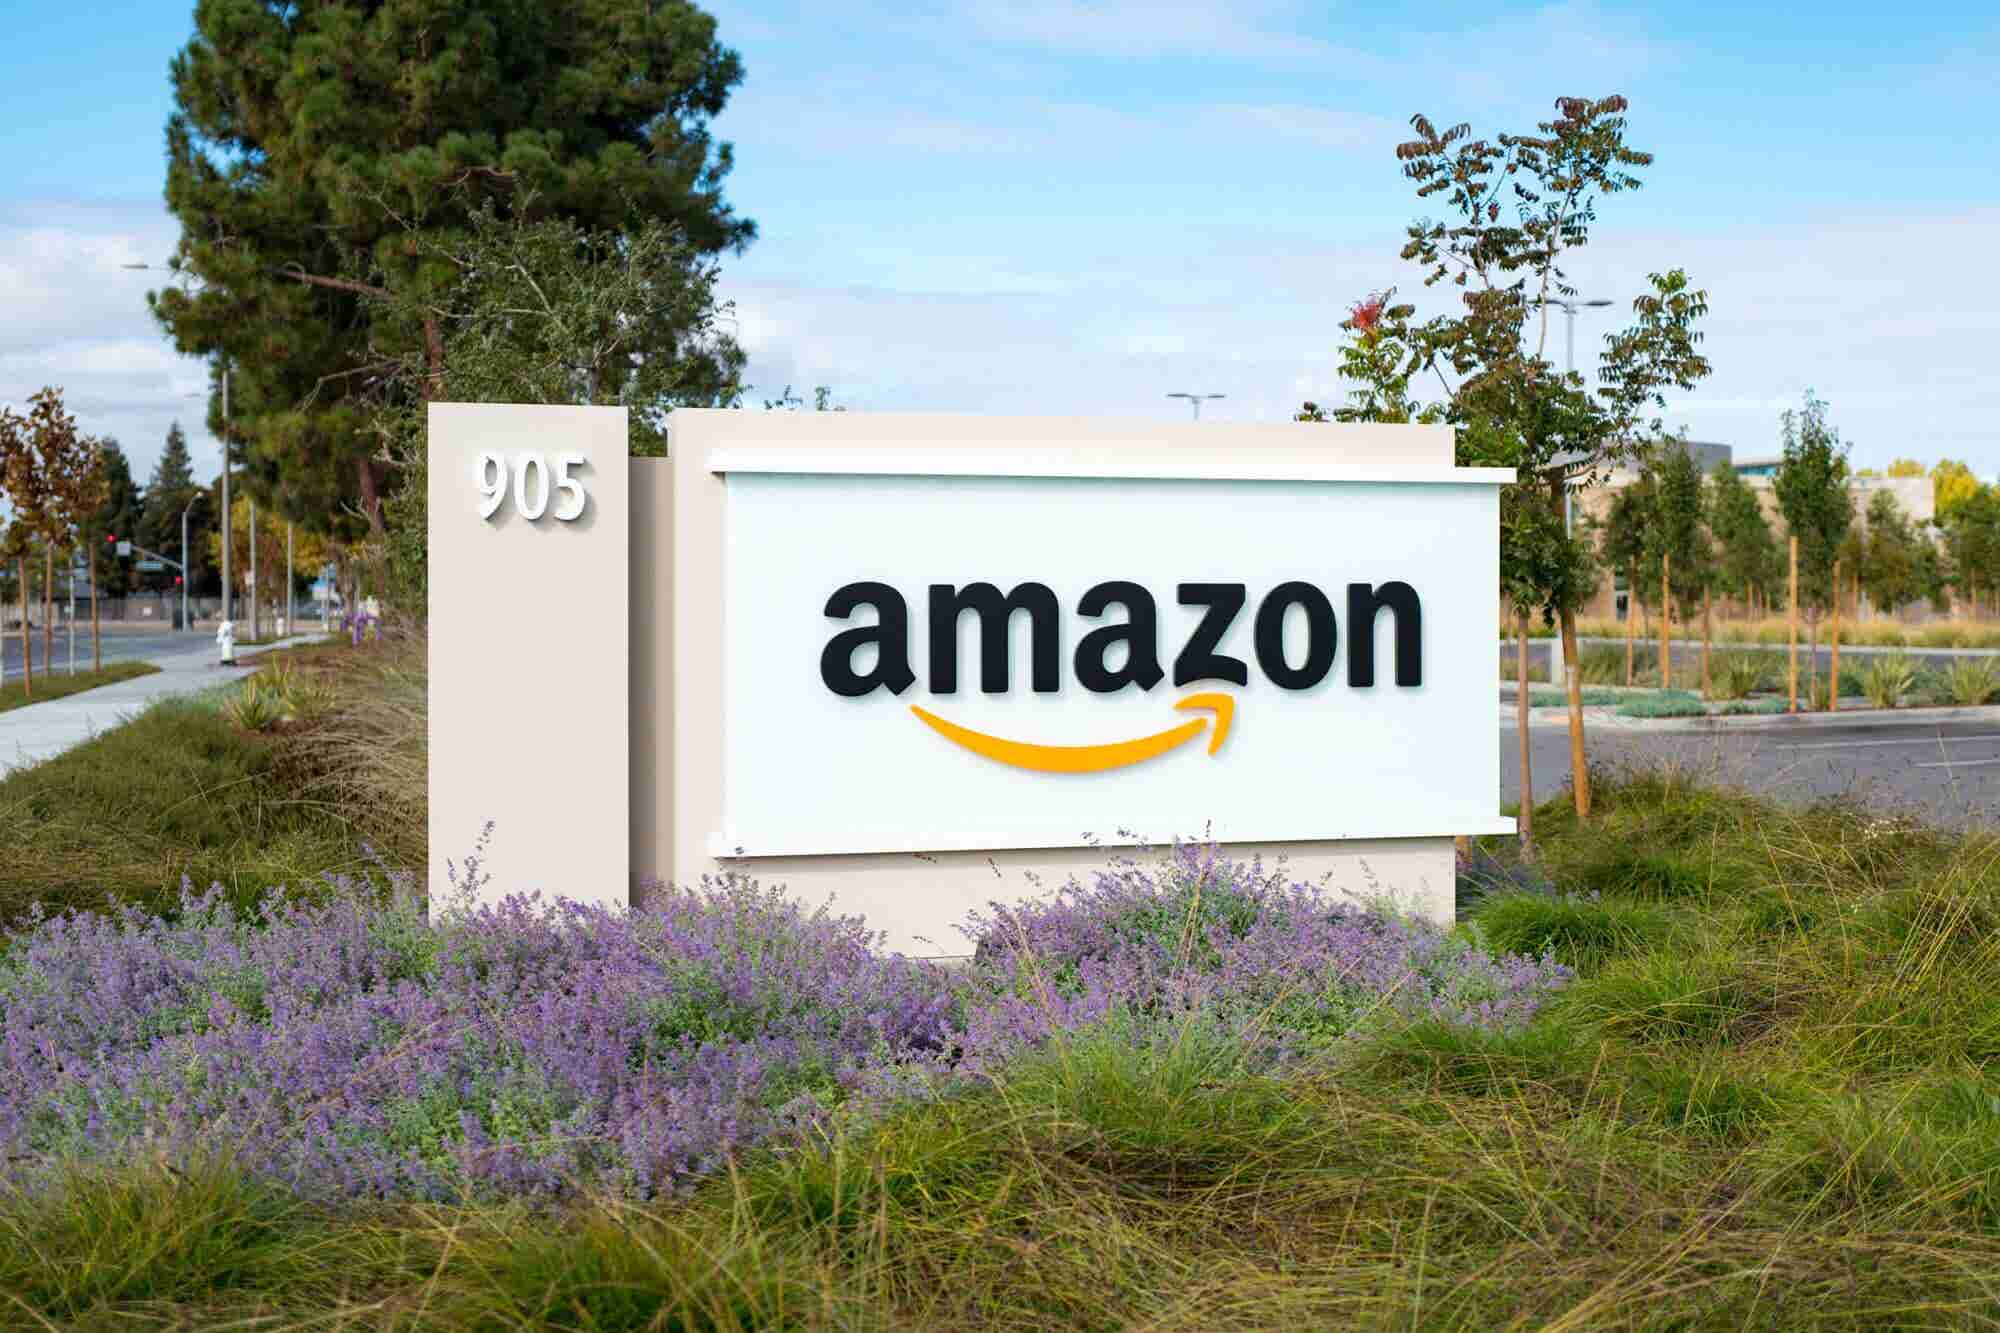 My City Wasn't Chosen for Amazon's HQ2. I'm Thrilled.